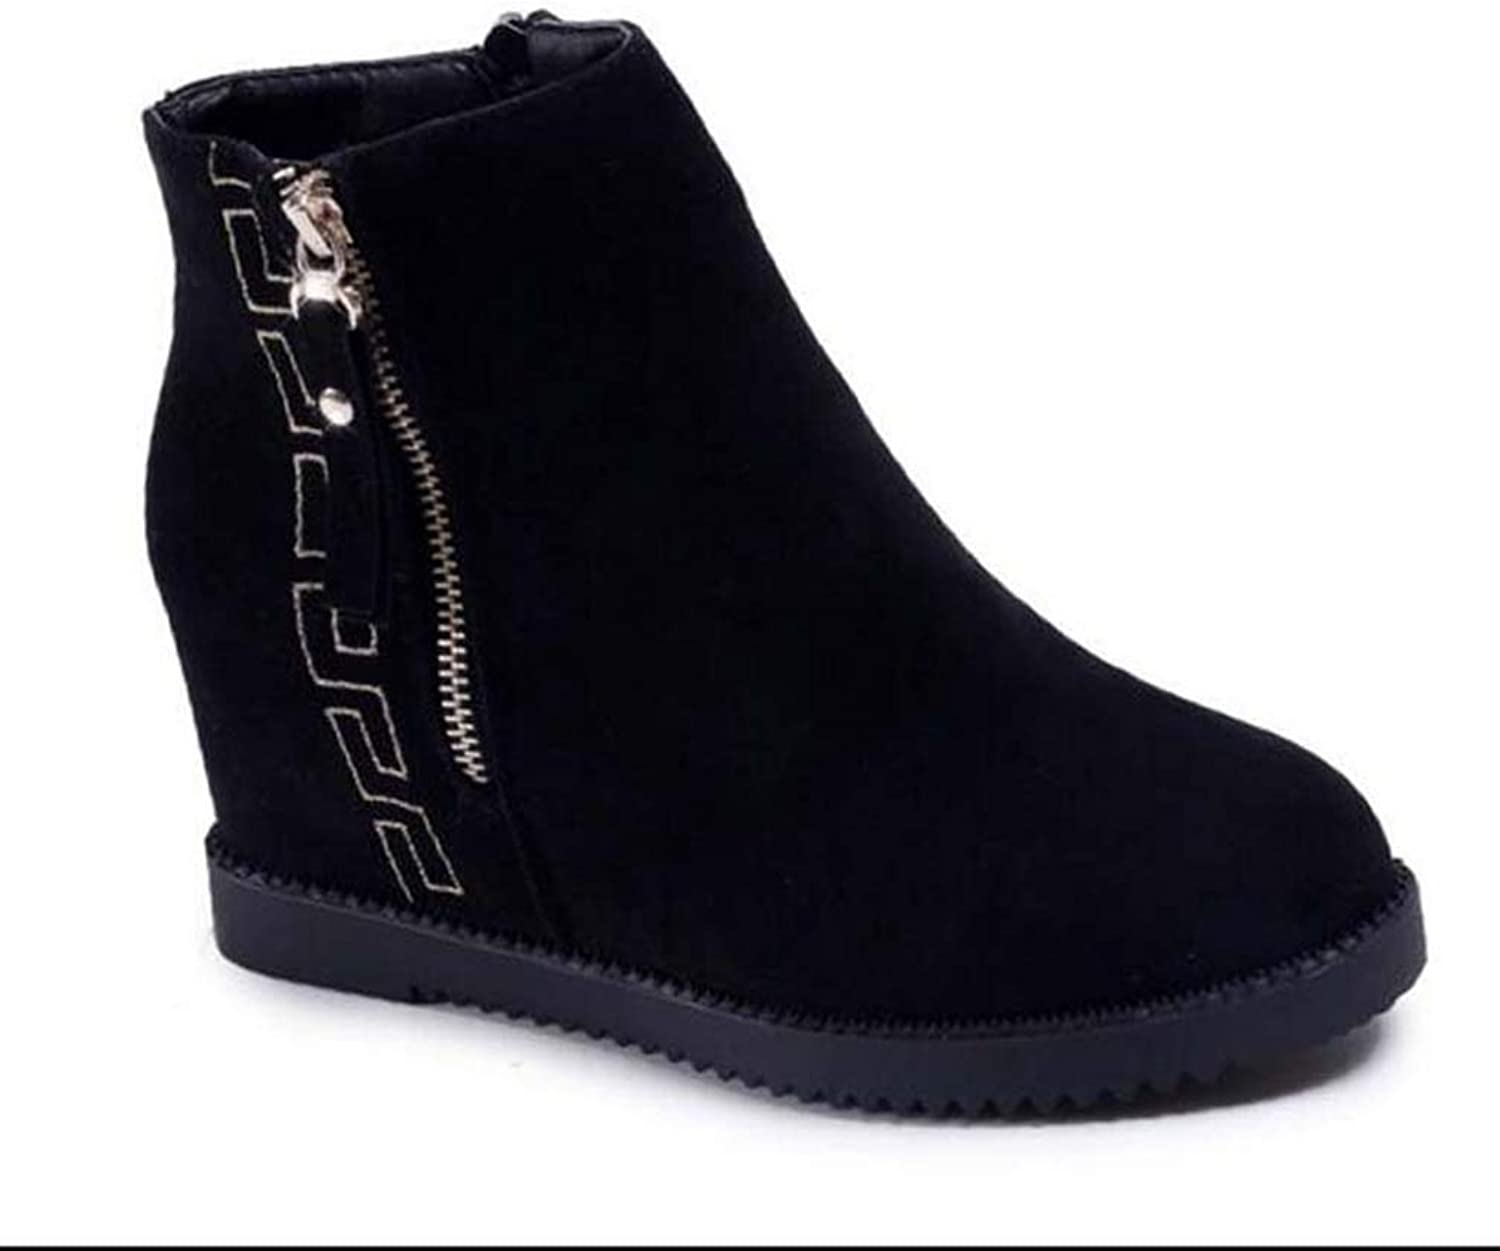 Woman Ankle Boots Zipper Wedges Height Increasing High Heel Round Toe Antislip Winter Warm Fashion Snow Boots